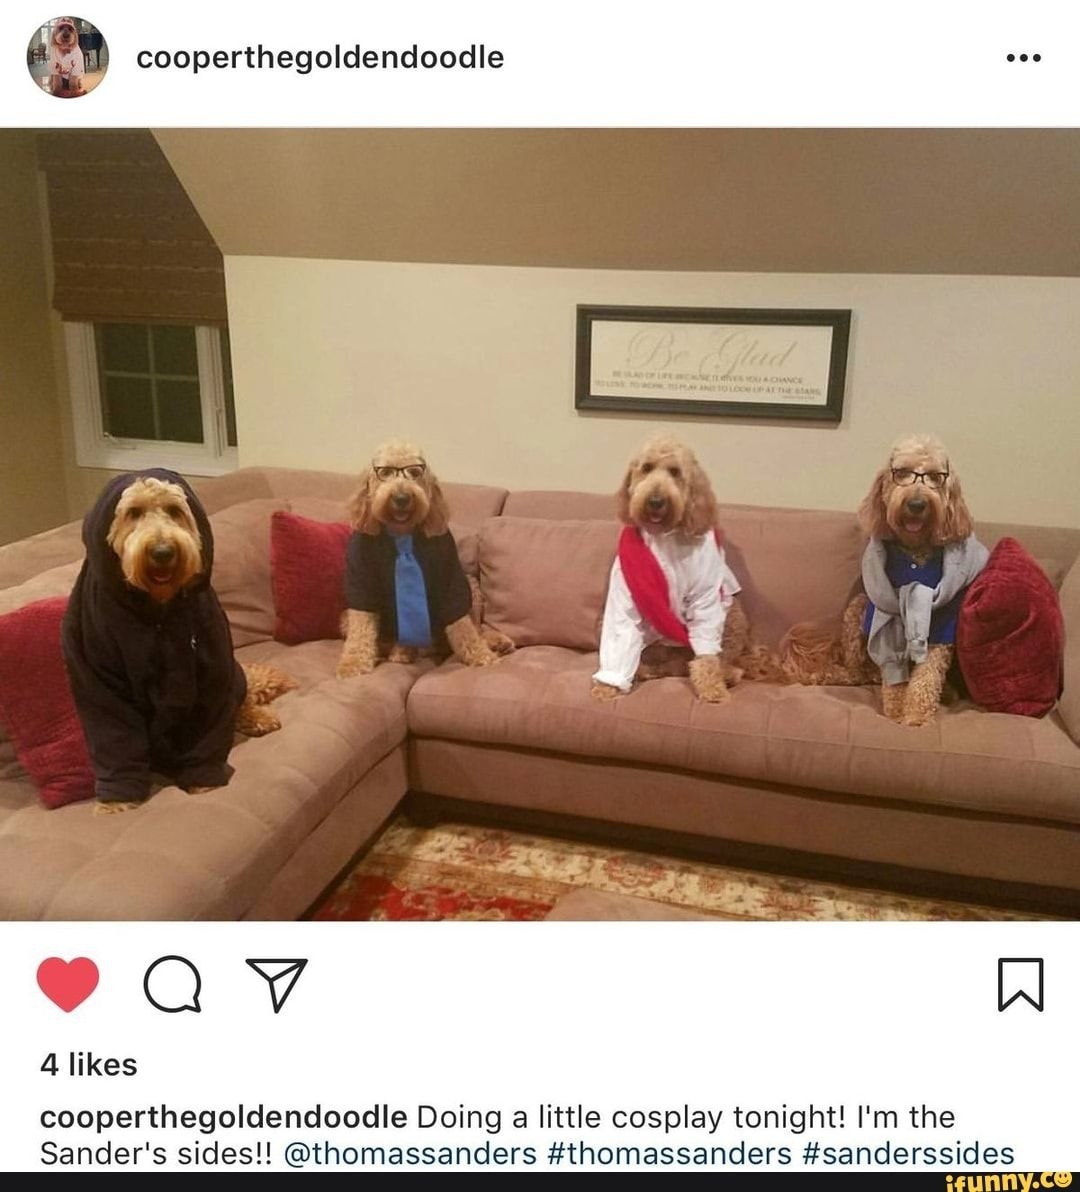 Cooperthegoldendoodle 4 Likes Cooperthegoldendoodle Doing A Little Cosplay Tonight I M The Sander S Sidesll C Thomassanders Thomassanders Sanderssides Ifu Sanders Thomas Sanders Sander Sides